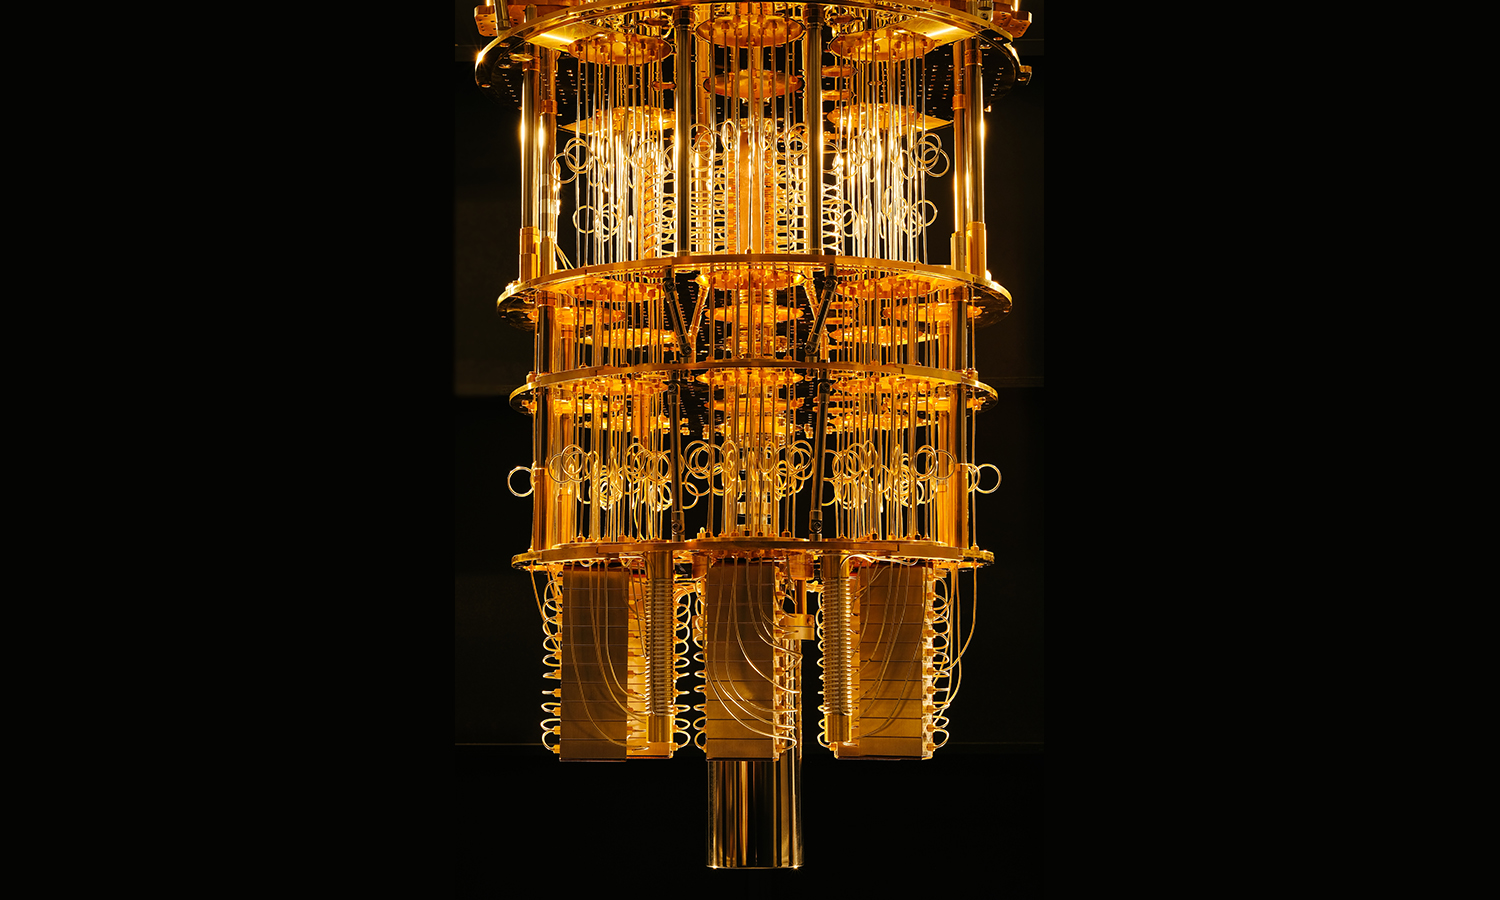 As a quantum computer can be in many states at the time it enables the calculation of many possibilities at once, says Dr Thomas Monz. Image credit - Flickr/IBM Research, licensed under CC BY-ND 2.0